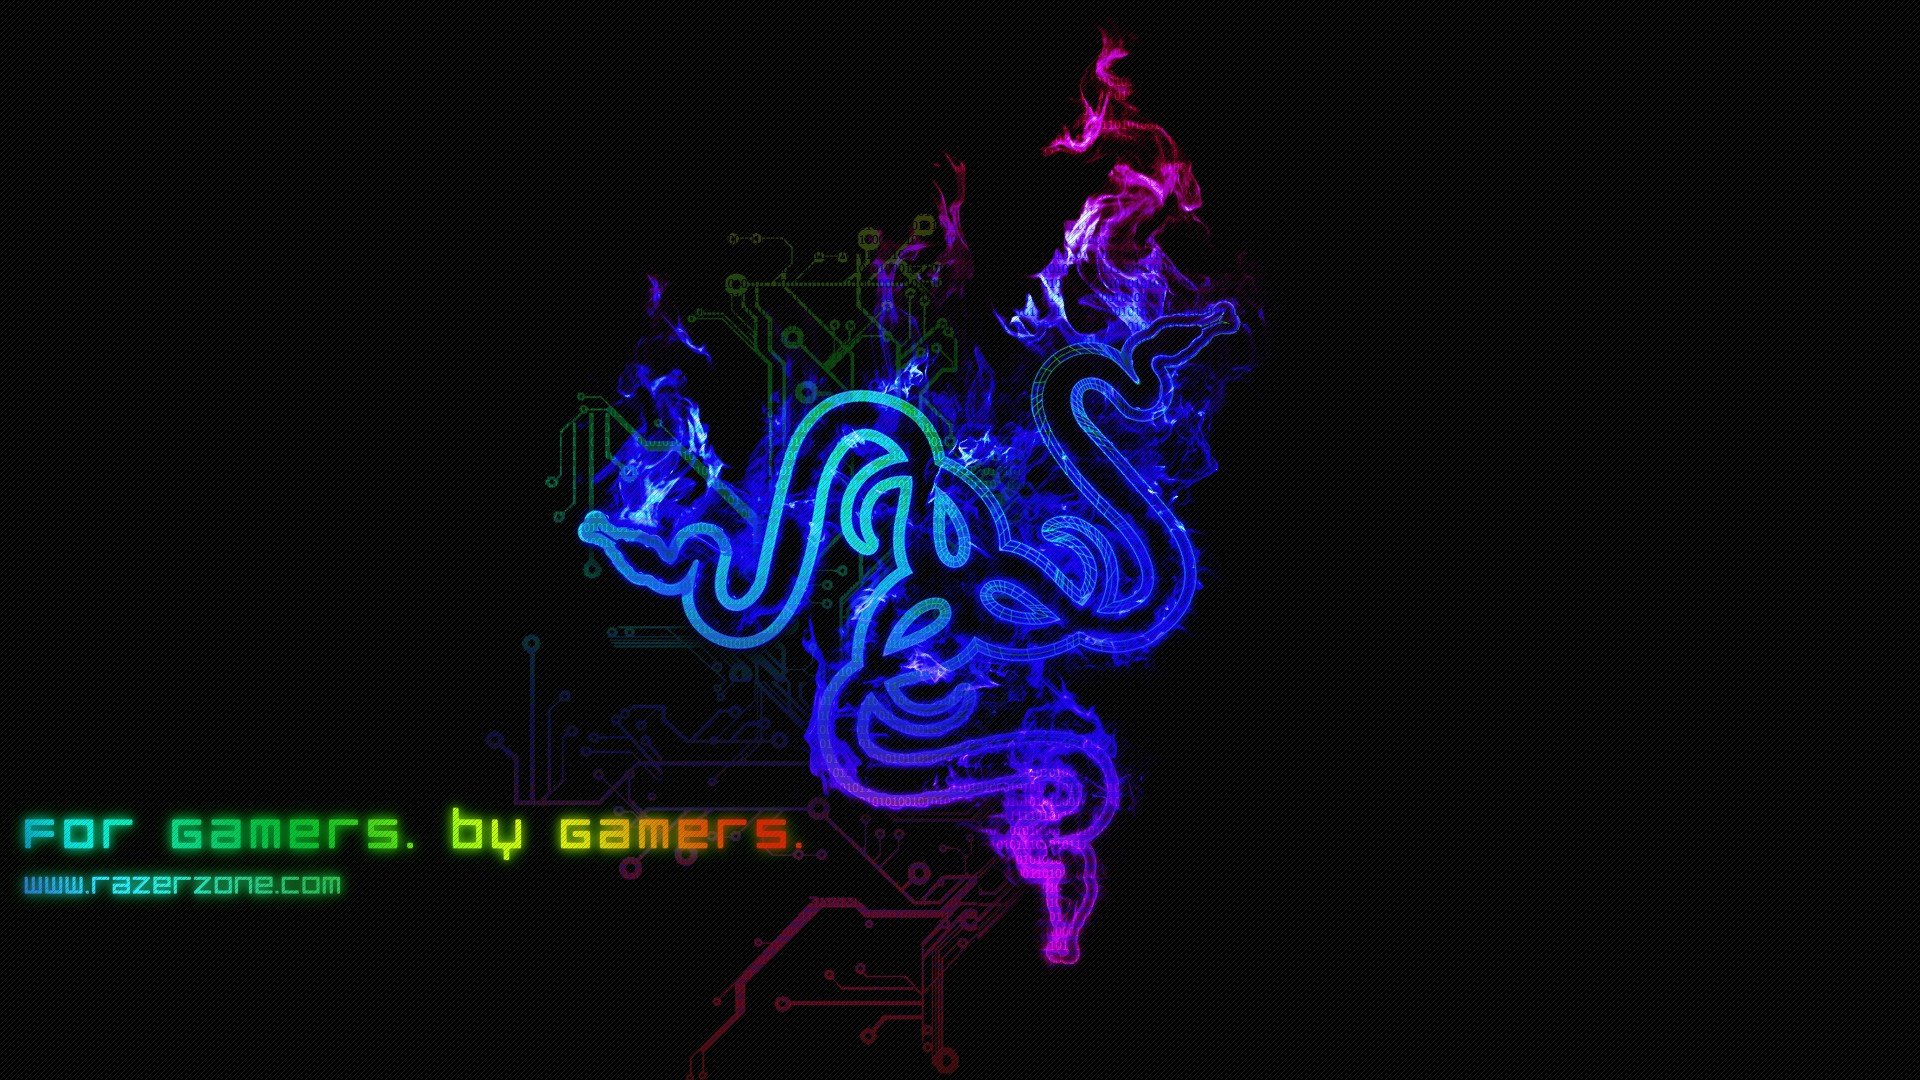 razer wallpaper 1920x1080 red - photo #31